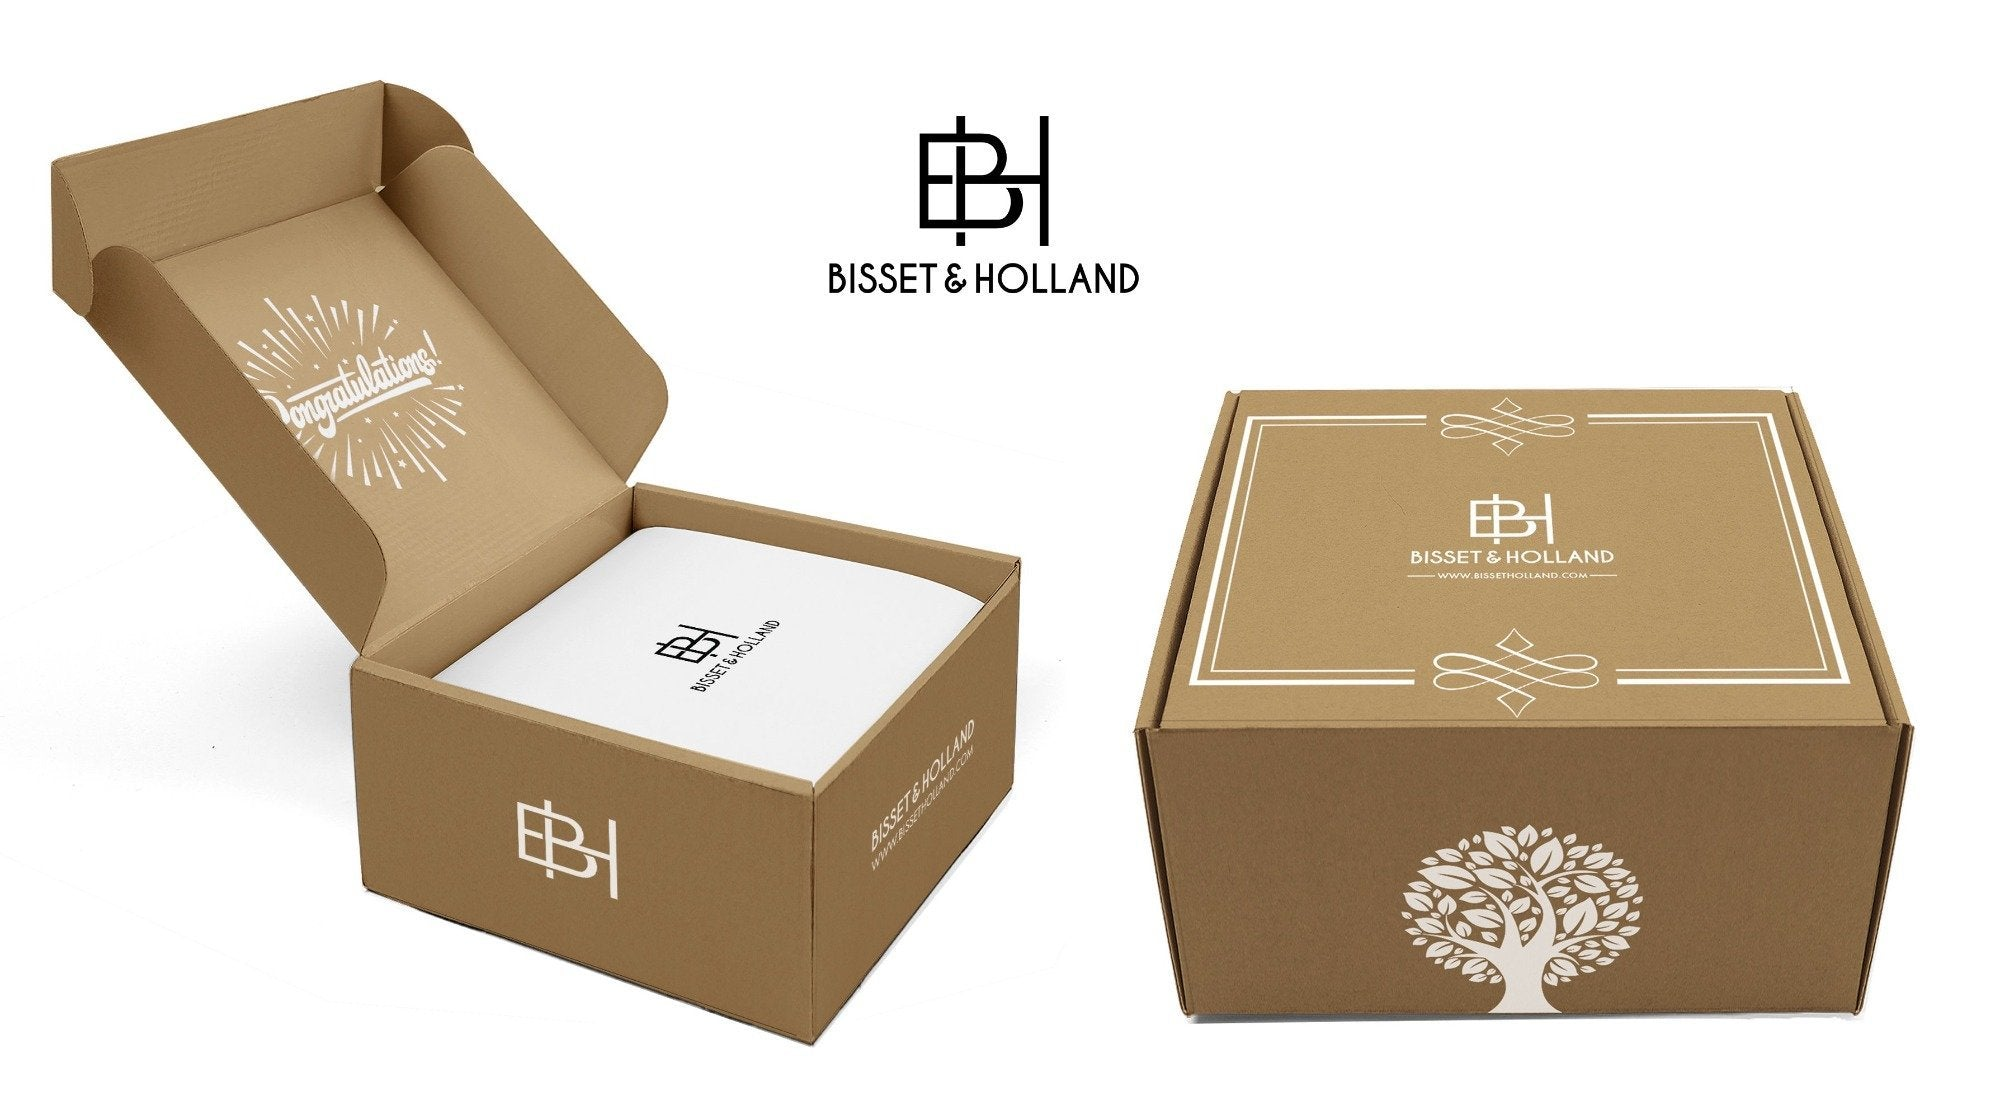 gift-box-luxury-recovery-bisset-holland